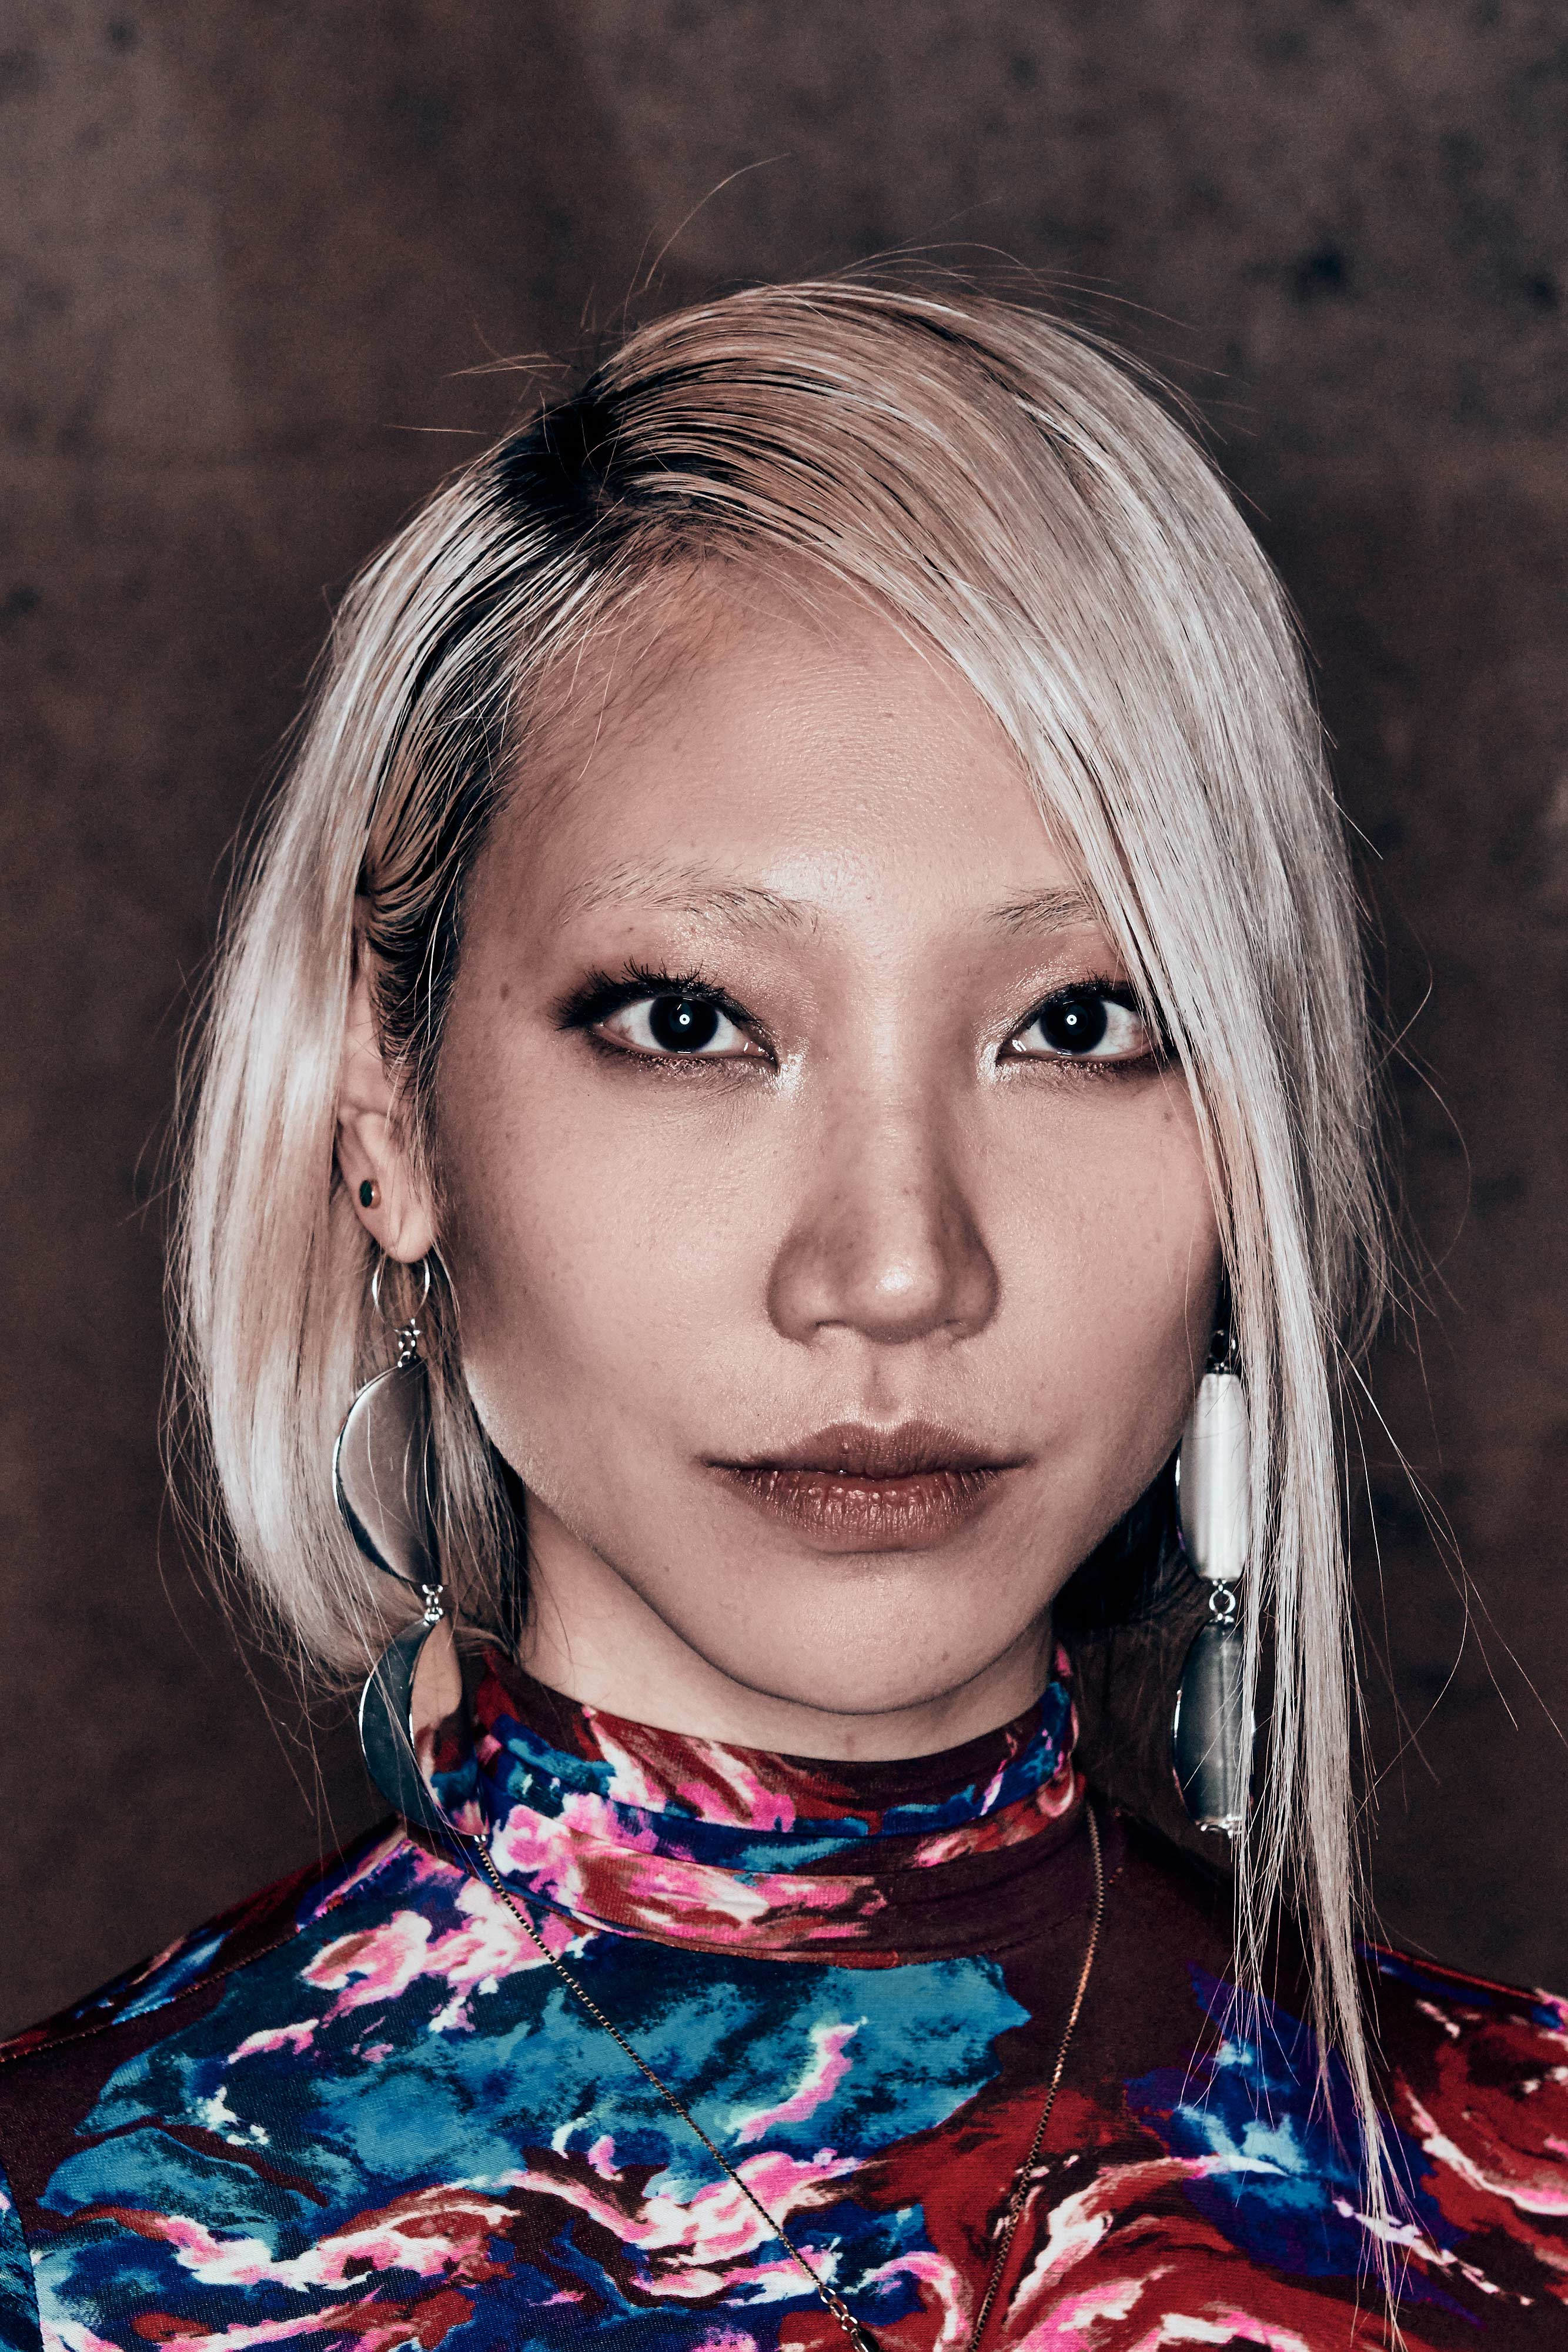 The 32-year old daughter of father (?) and mother(?) Soo Joo Park in 2021 photo. Soo Joo Park earned a  million dollar salary - leaving the net worth at 3 million in 2021